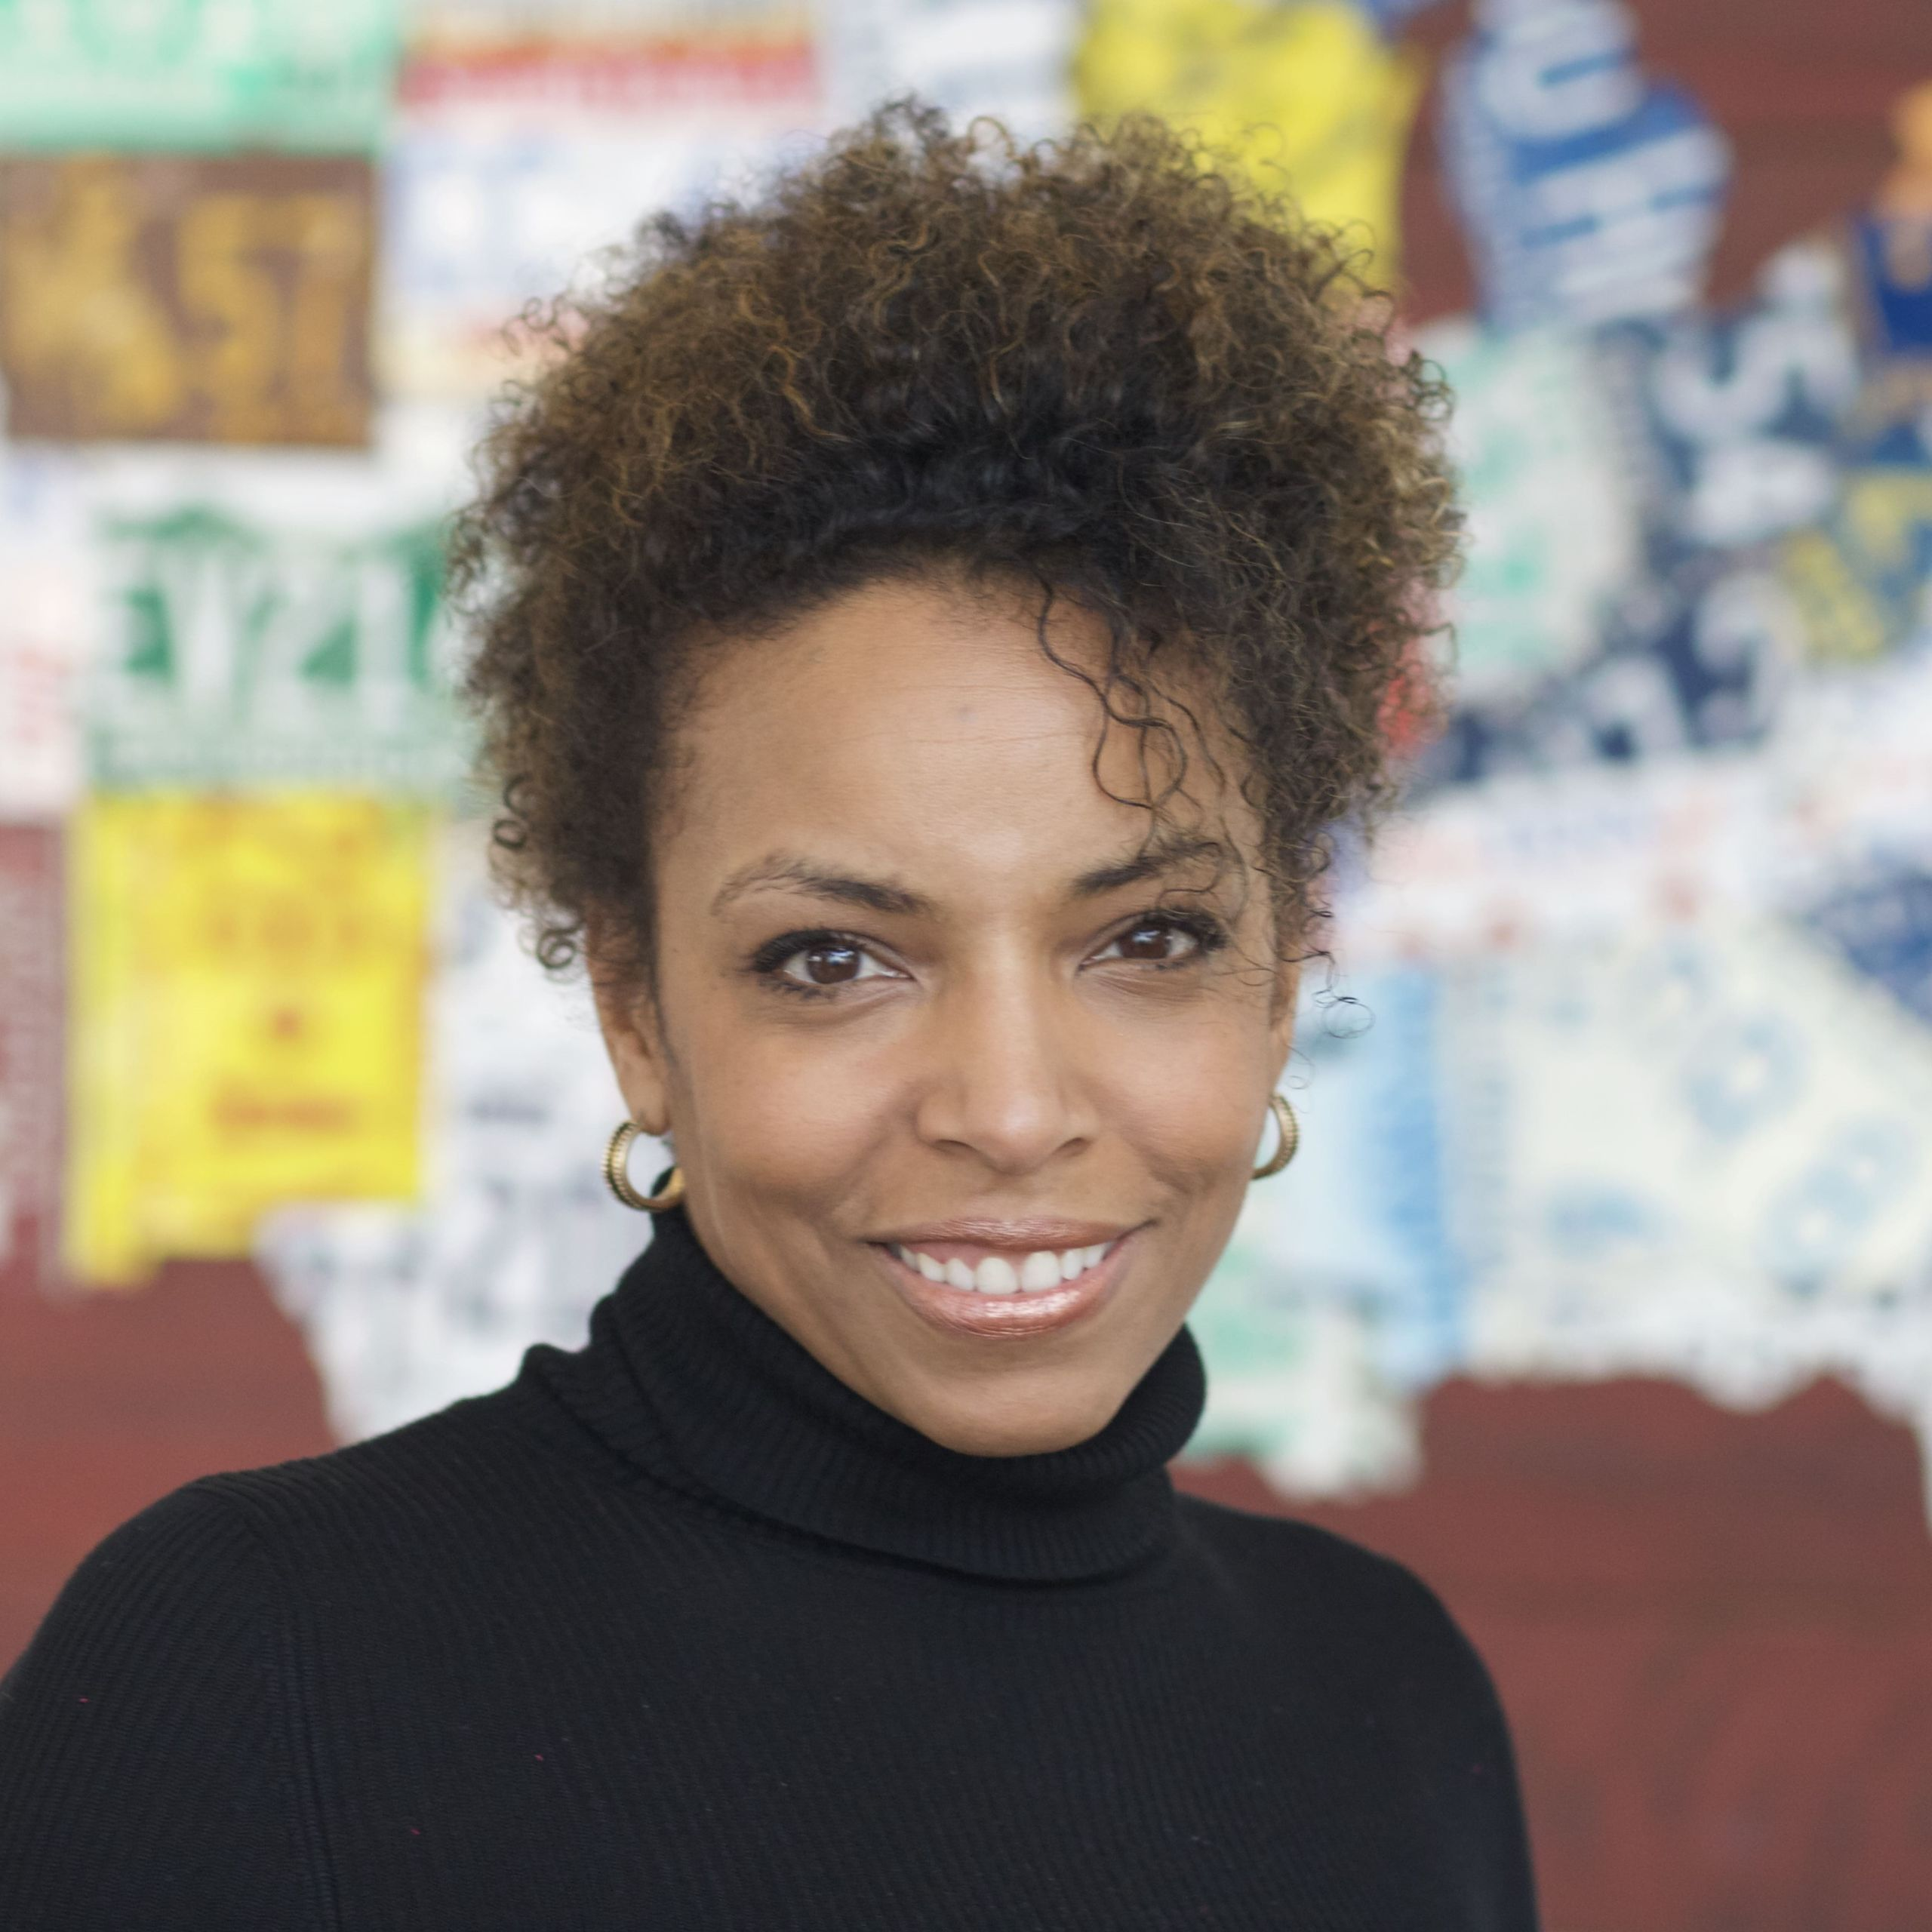 Headshot of Cynthia Overton, a Black woman with natural curly hair swept up and a black turtleneck